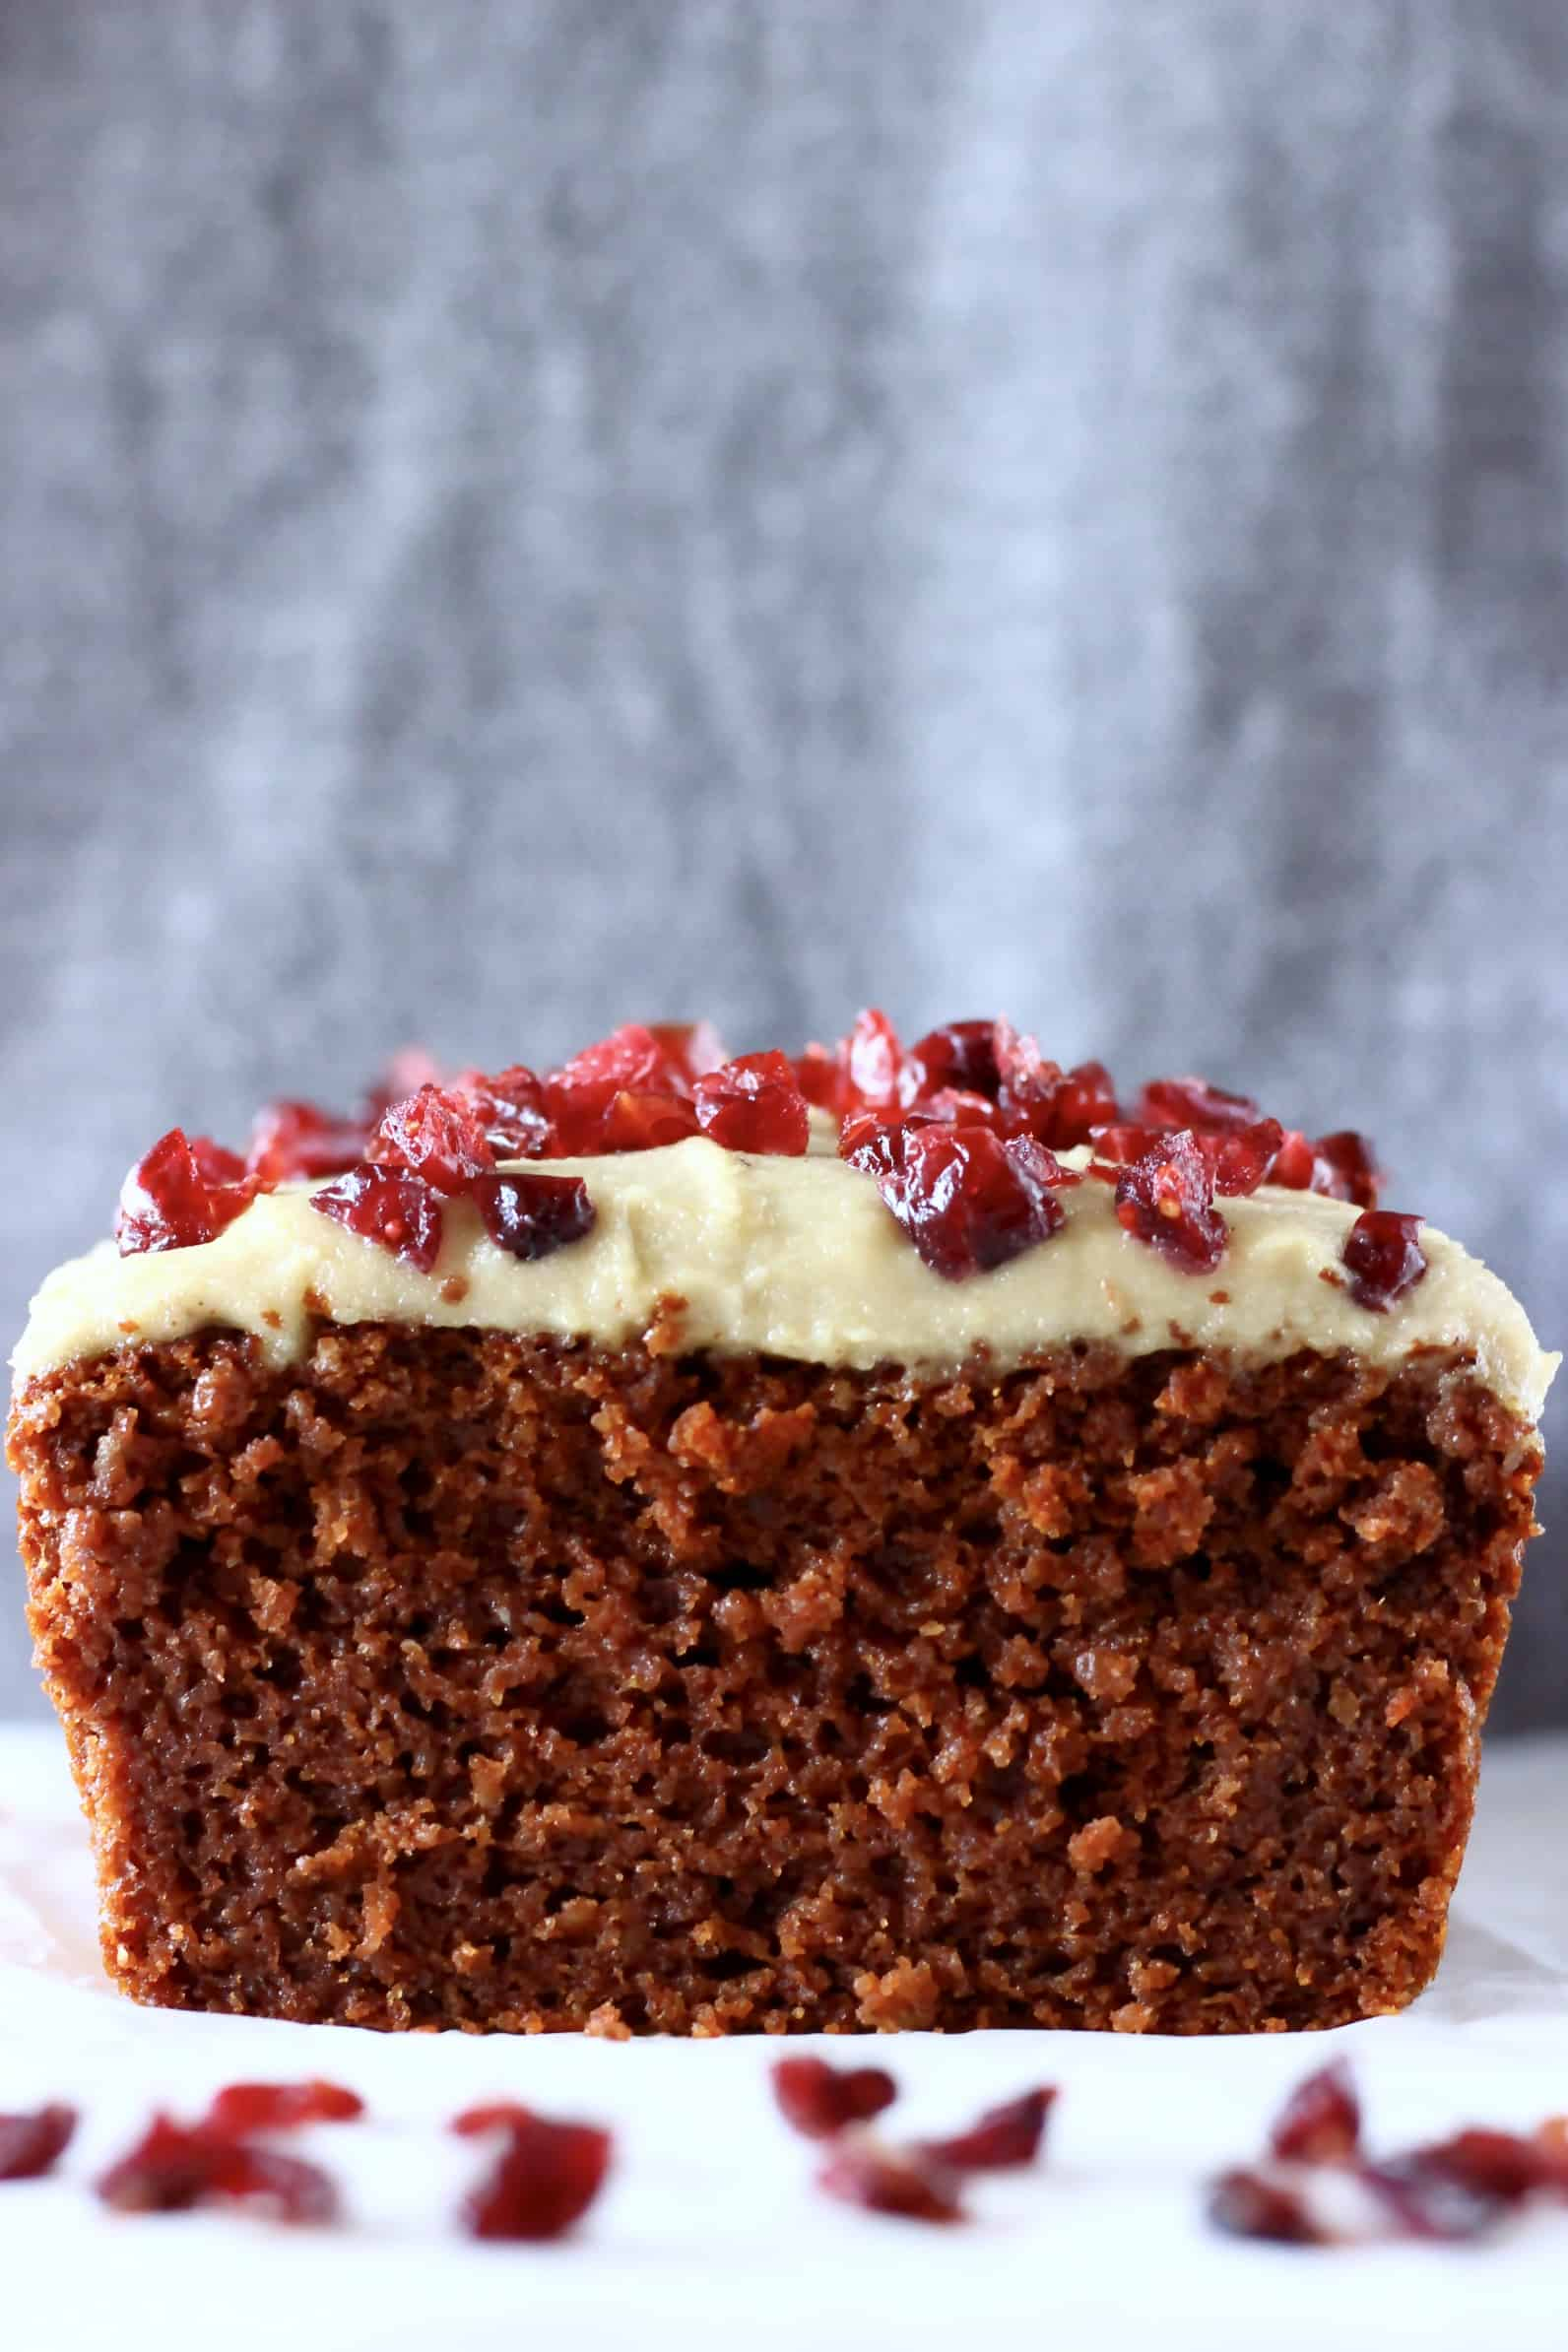 Sliced gluten-free vegan gingerbread loaf cake topped with white frosting and dried cranberries